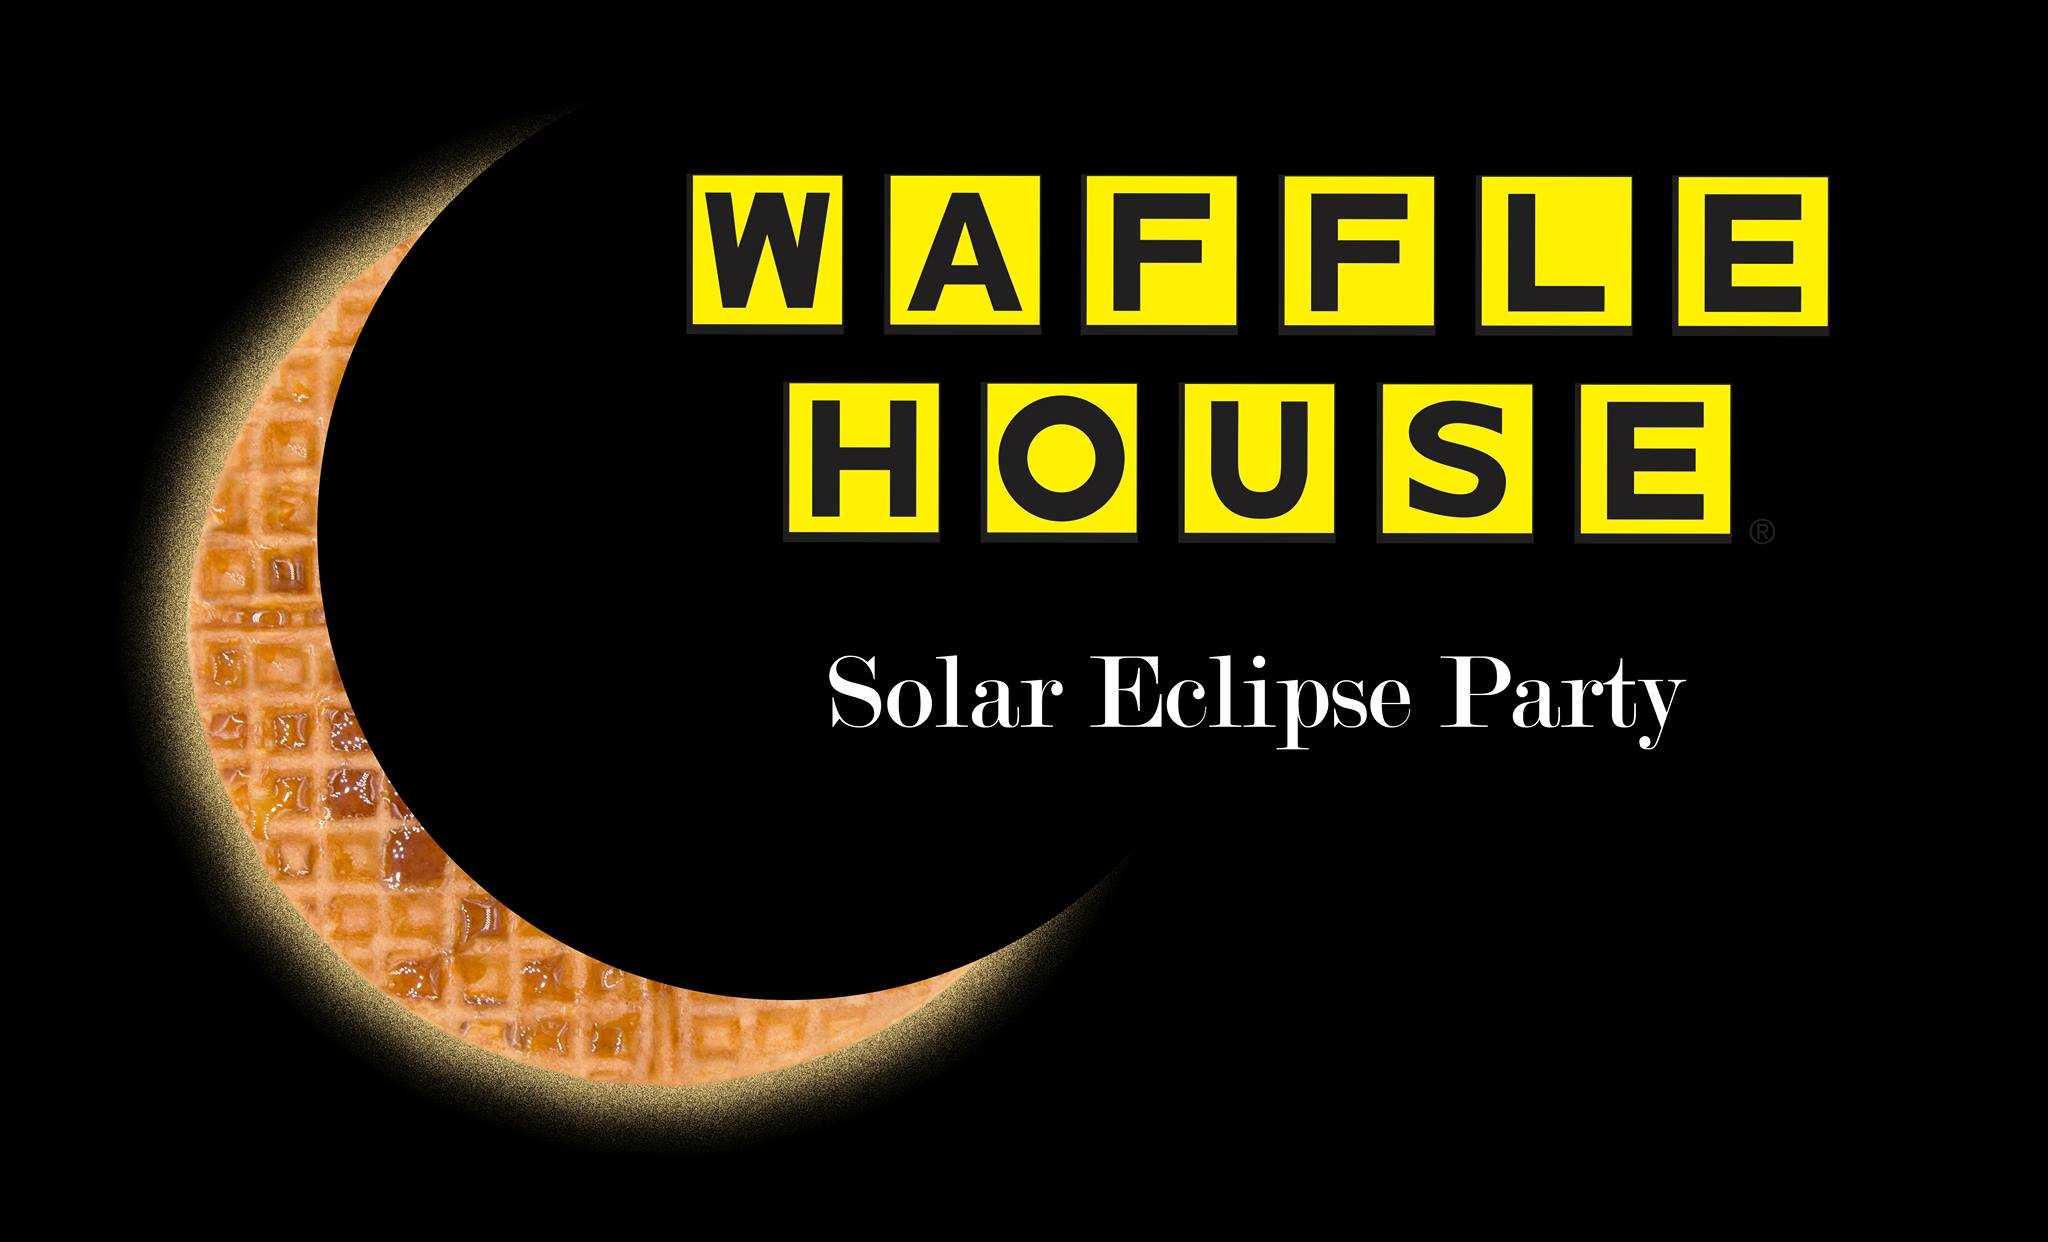 Waffle House plans Smothered and Covered eclipse party in Upstate